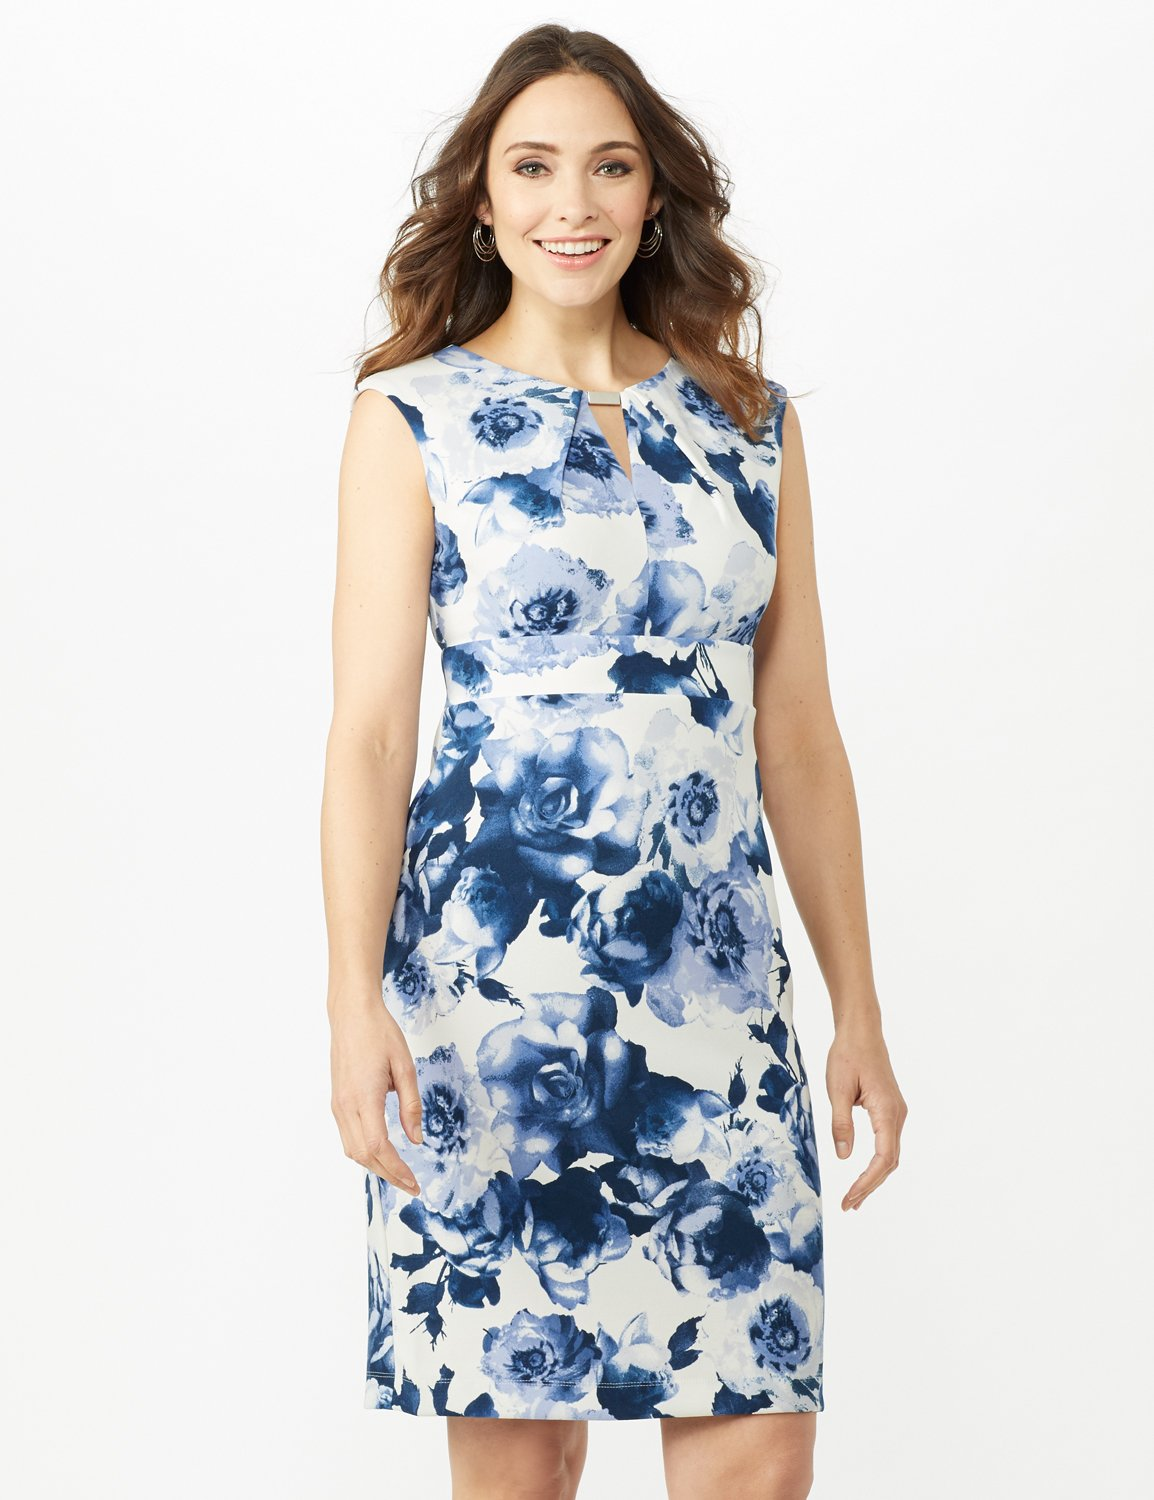 Sleeveless Keyhole Neck with Bar Floral Sheath Scuba Dress -Ivory/China Blue - Front